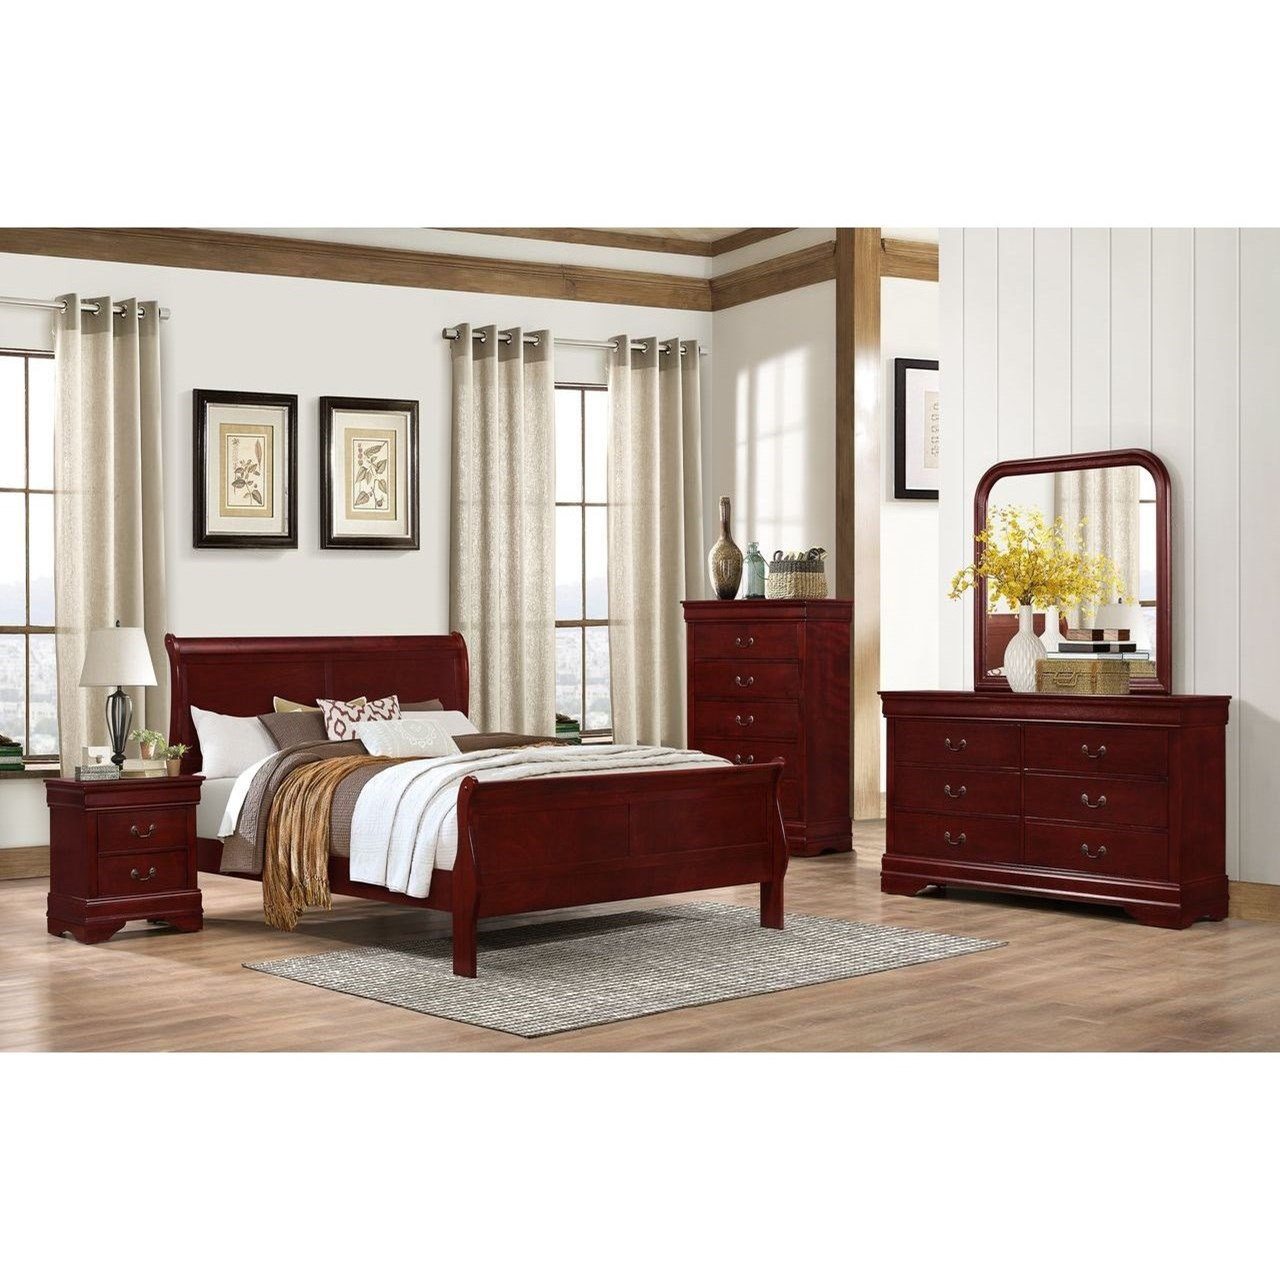 Room Store Furniture Locations: Lifestyle 4937 6 Drawer Dresser